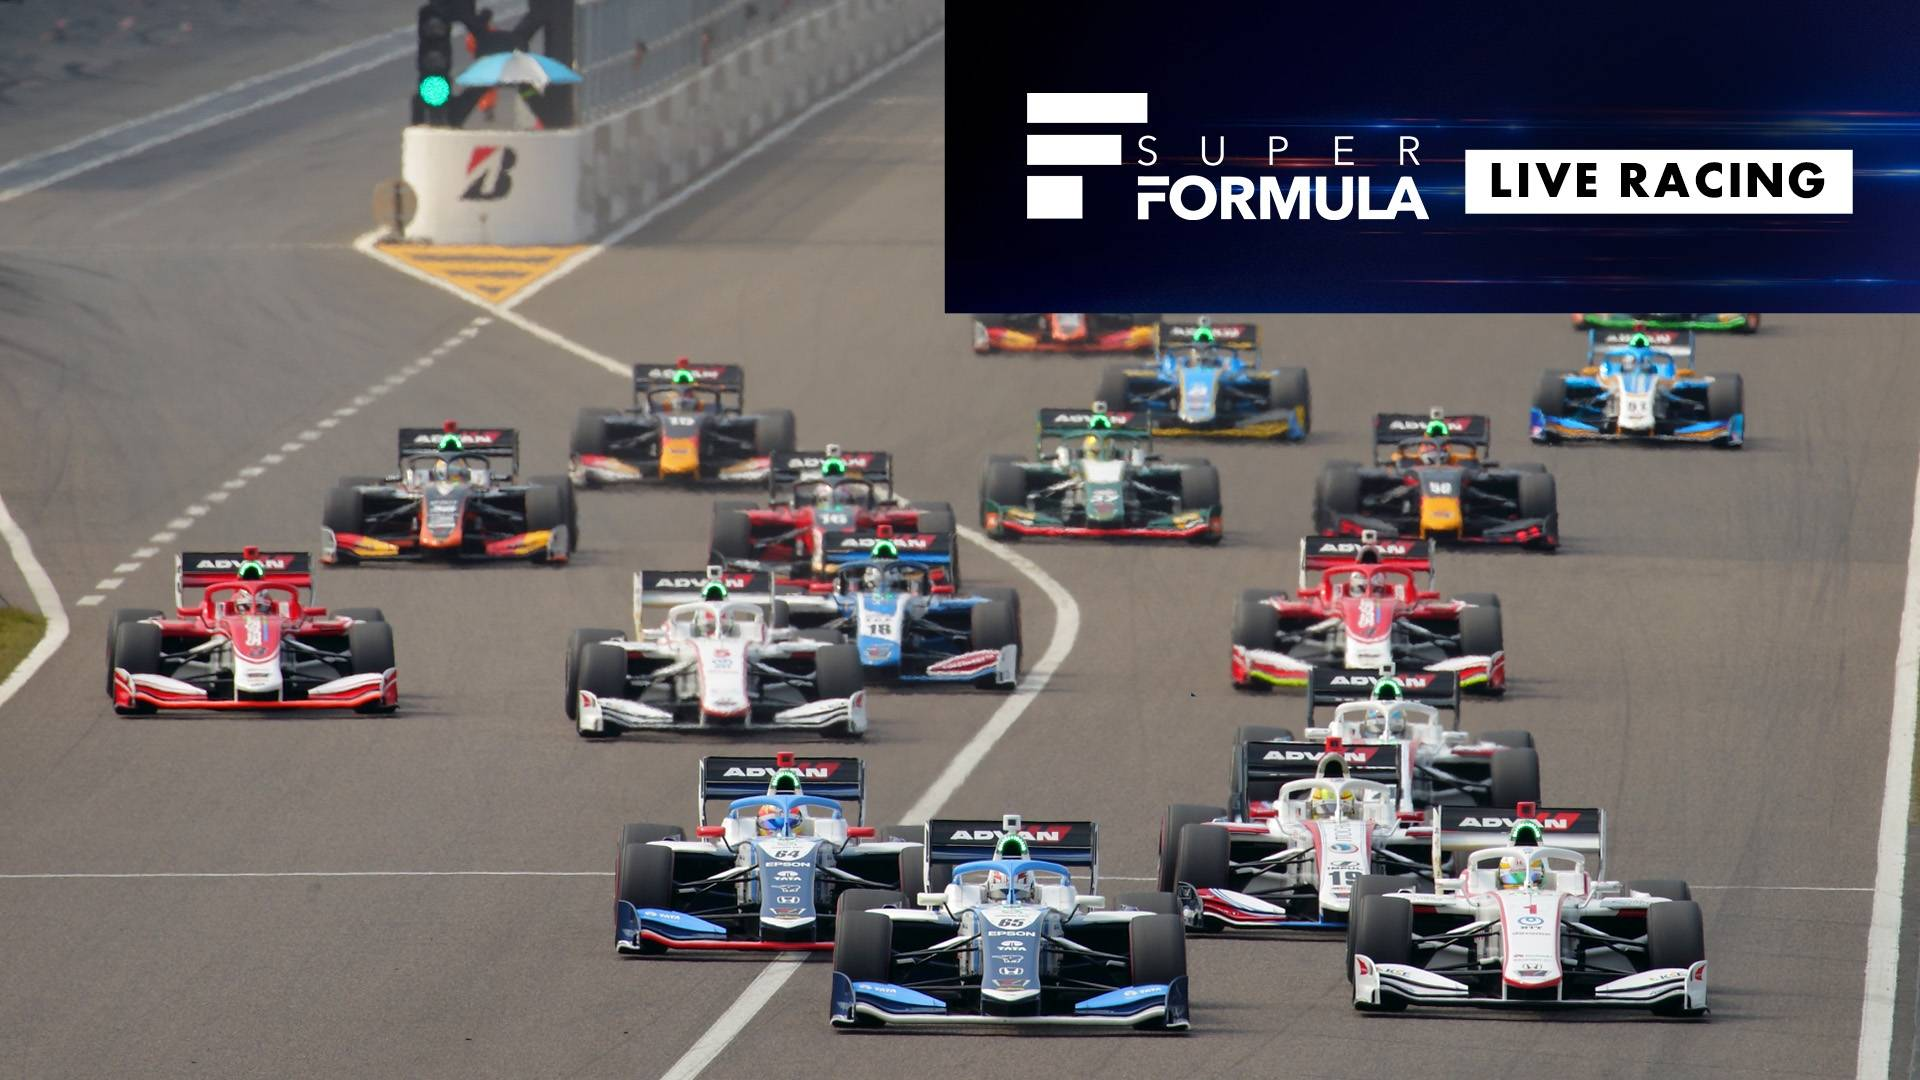 /join/tvSlider/Super Formula Live Racing